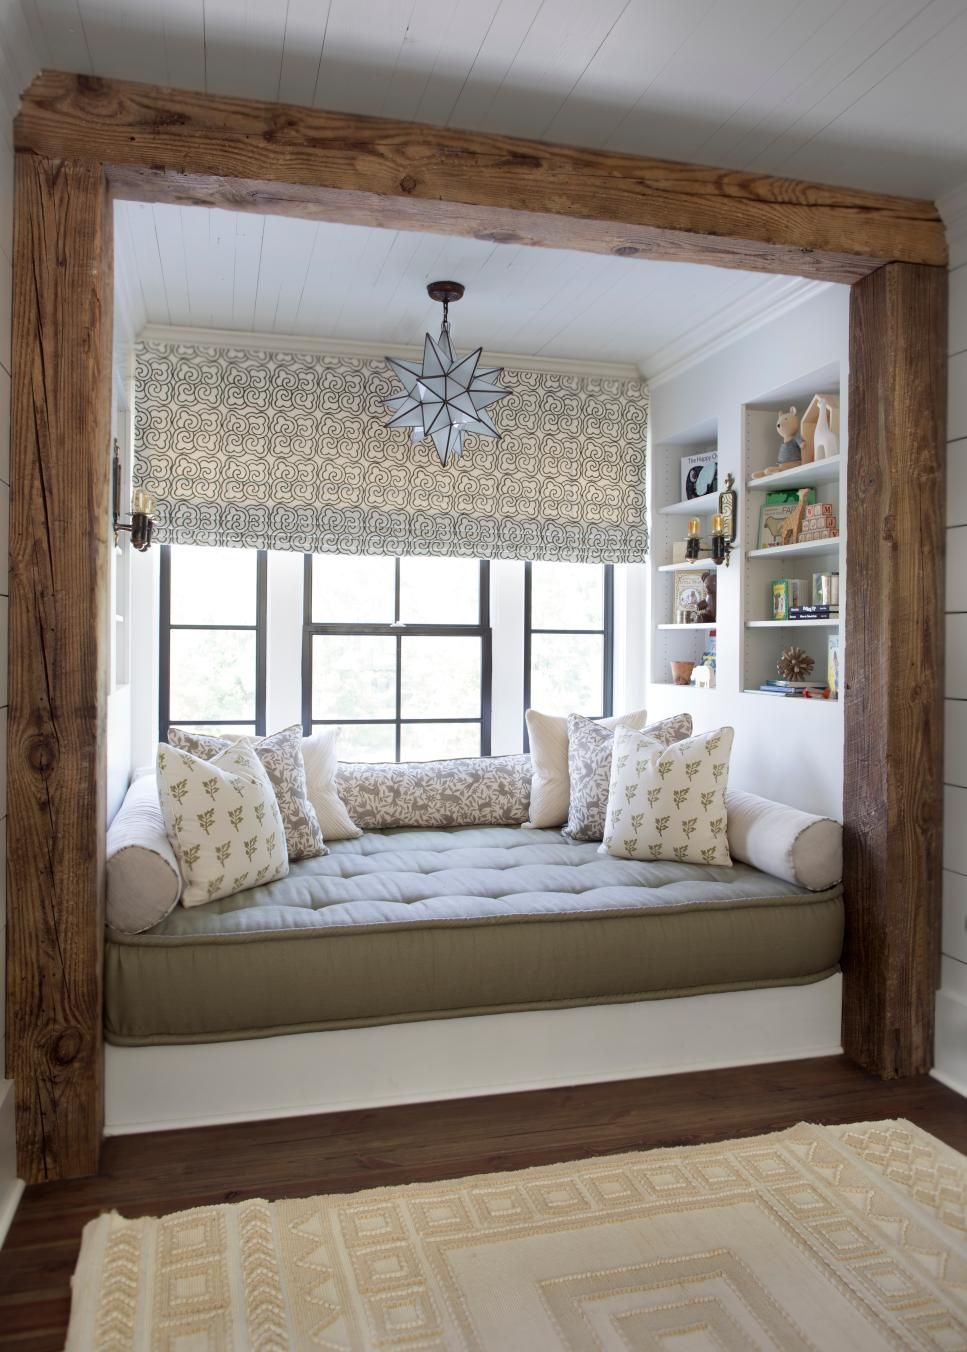 3 window bedroom  pin by patty sandlin on rooms  pinterest  room